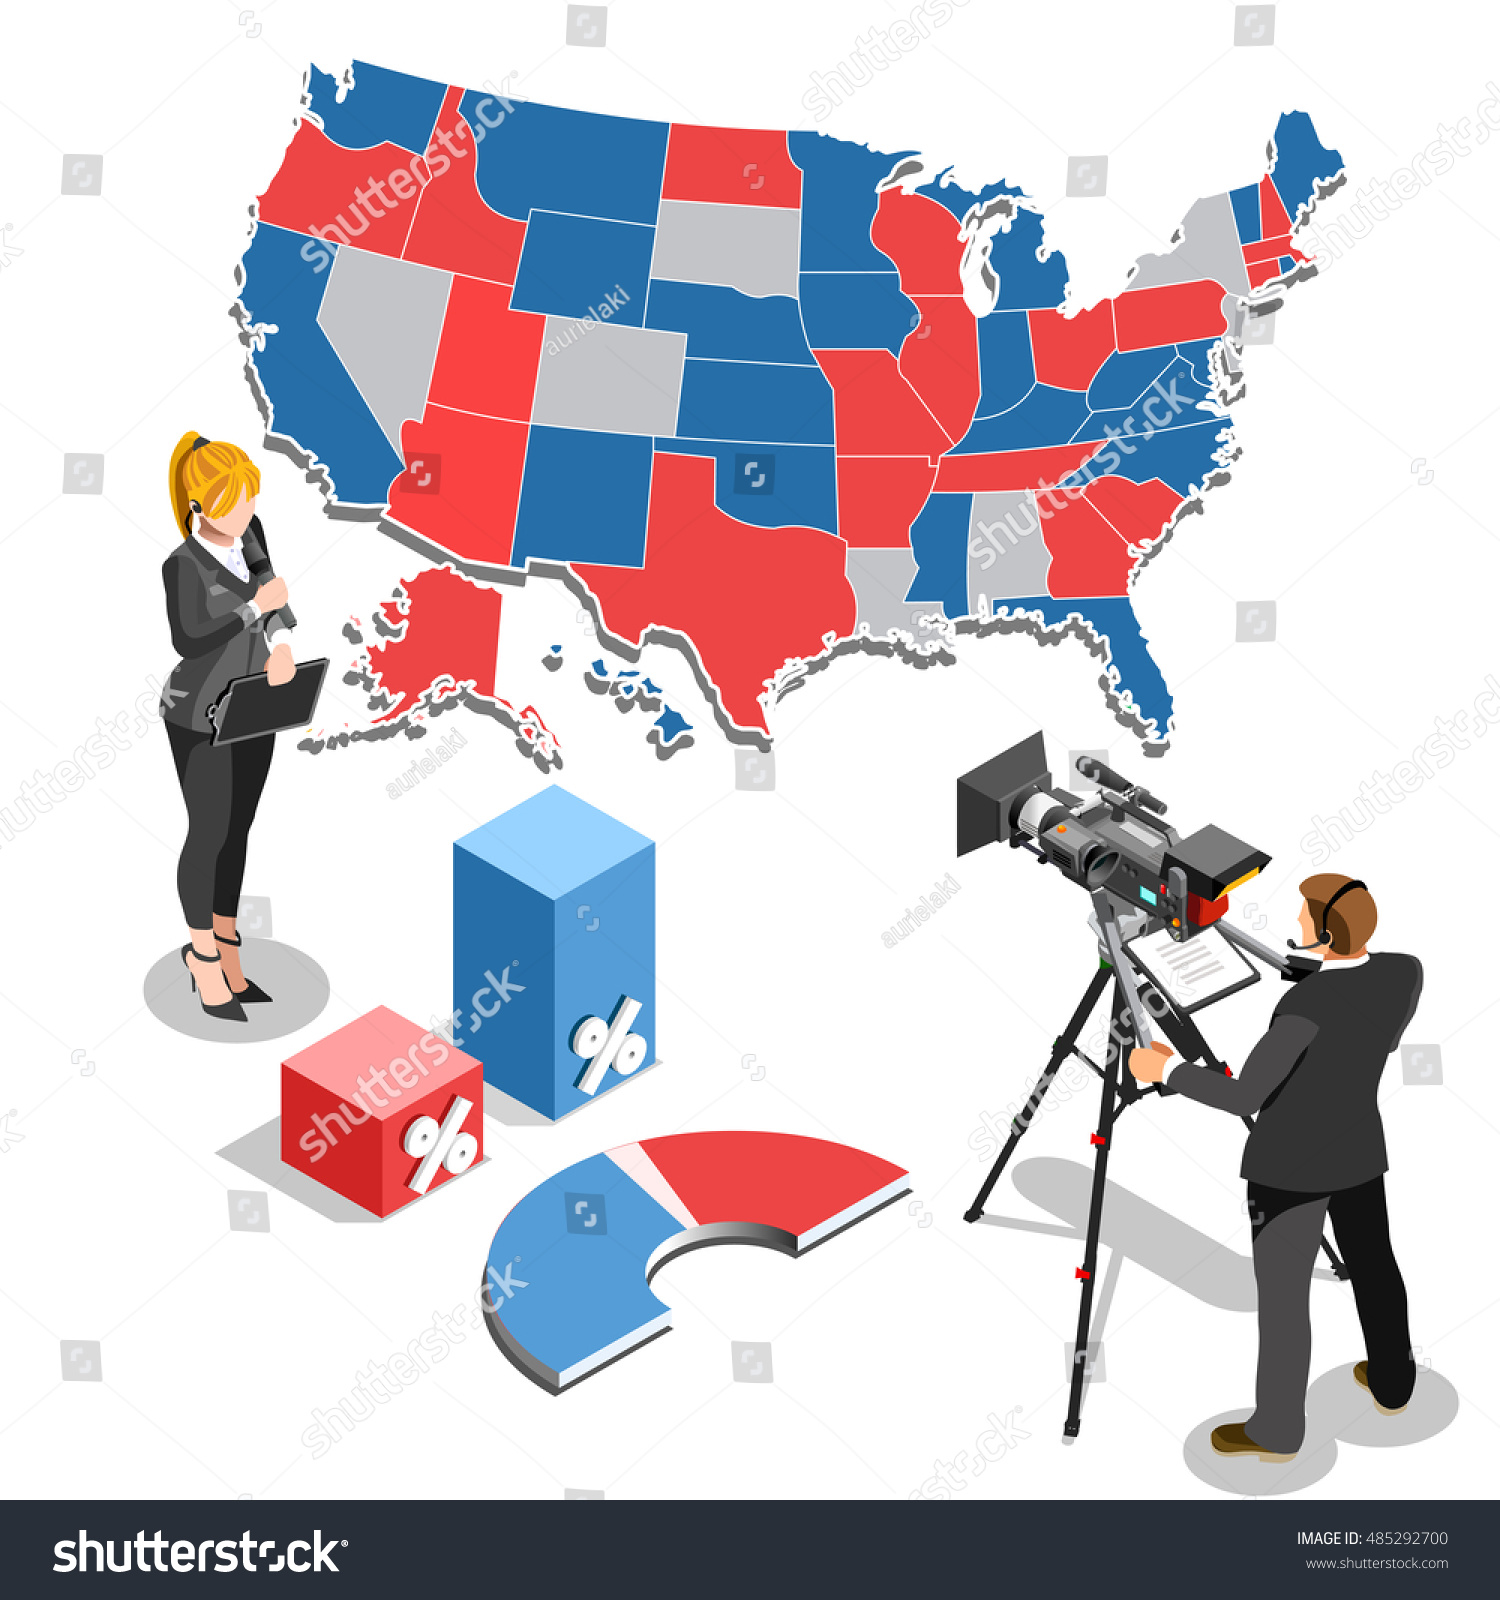 Us Usa Map Election News Infographic Democrat Republican Convention Hall Party Presidential Debate Endort